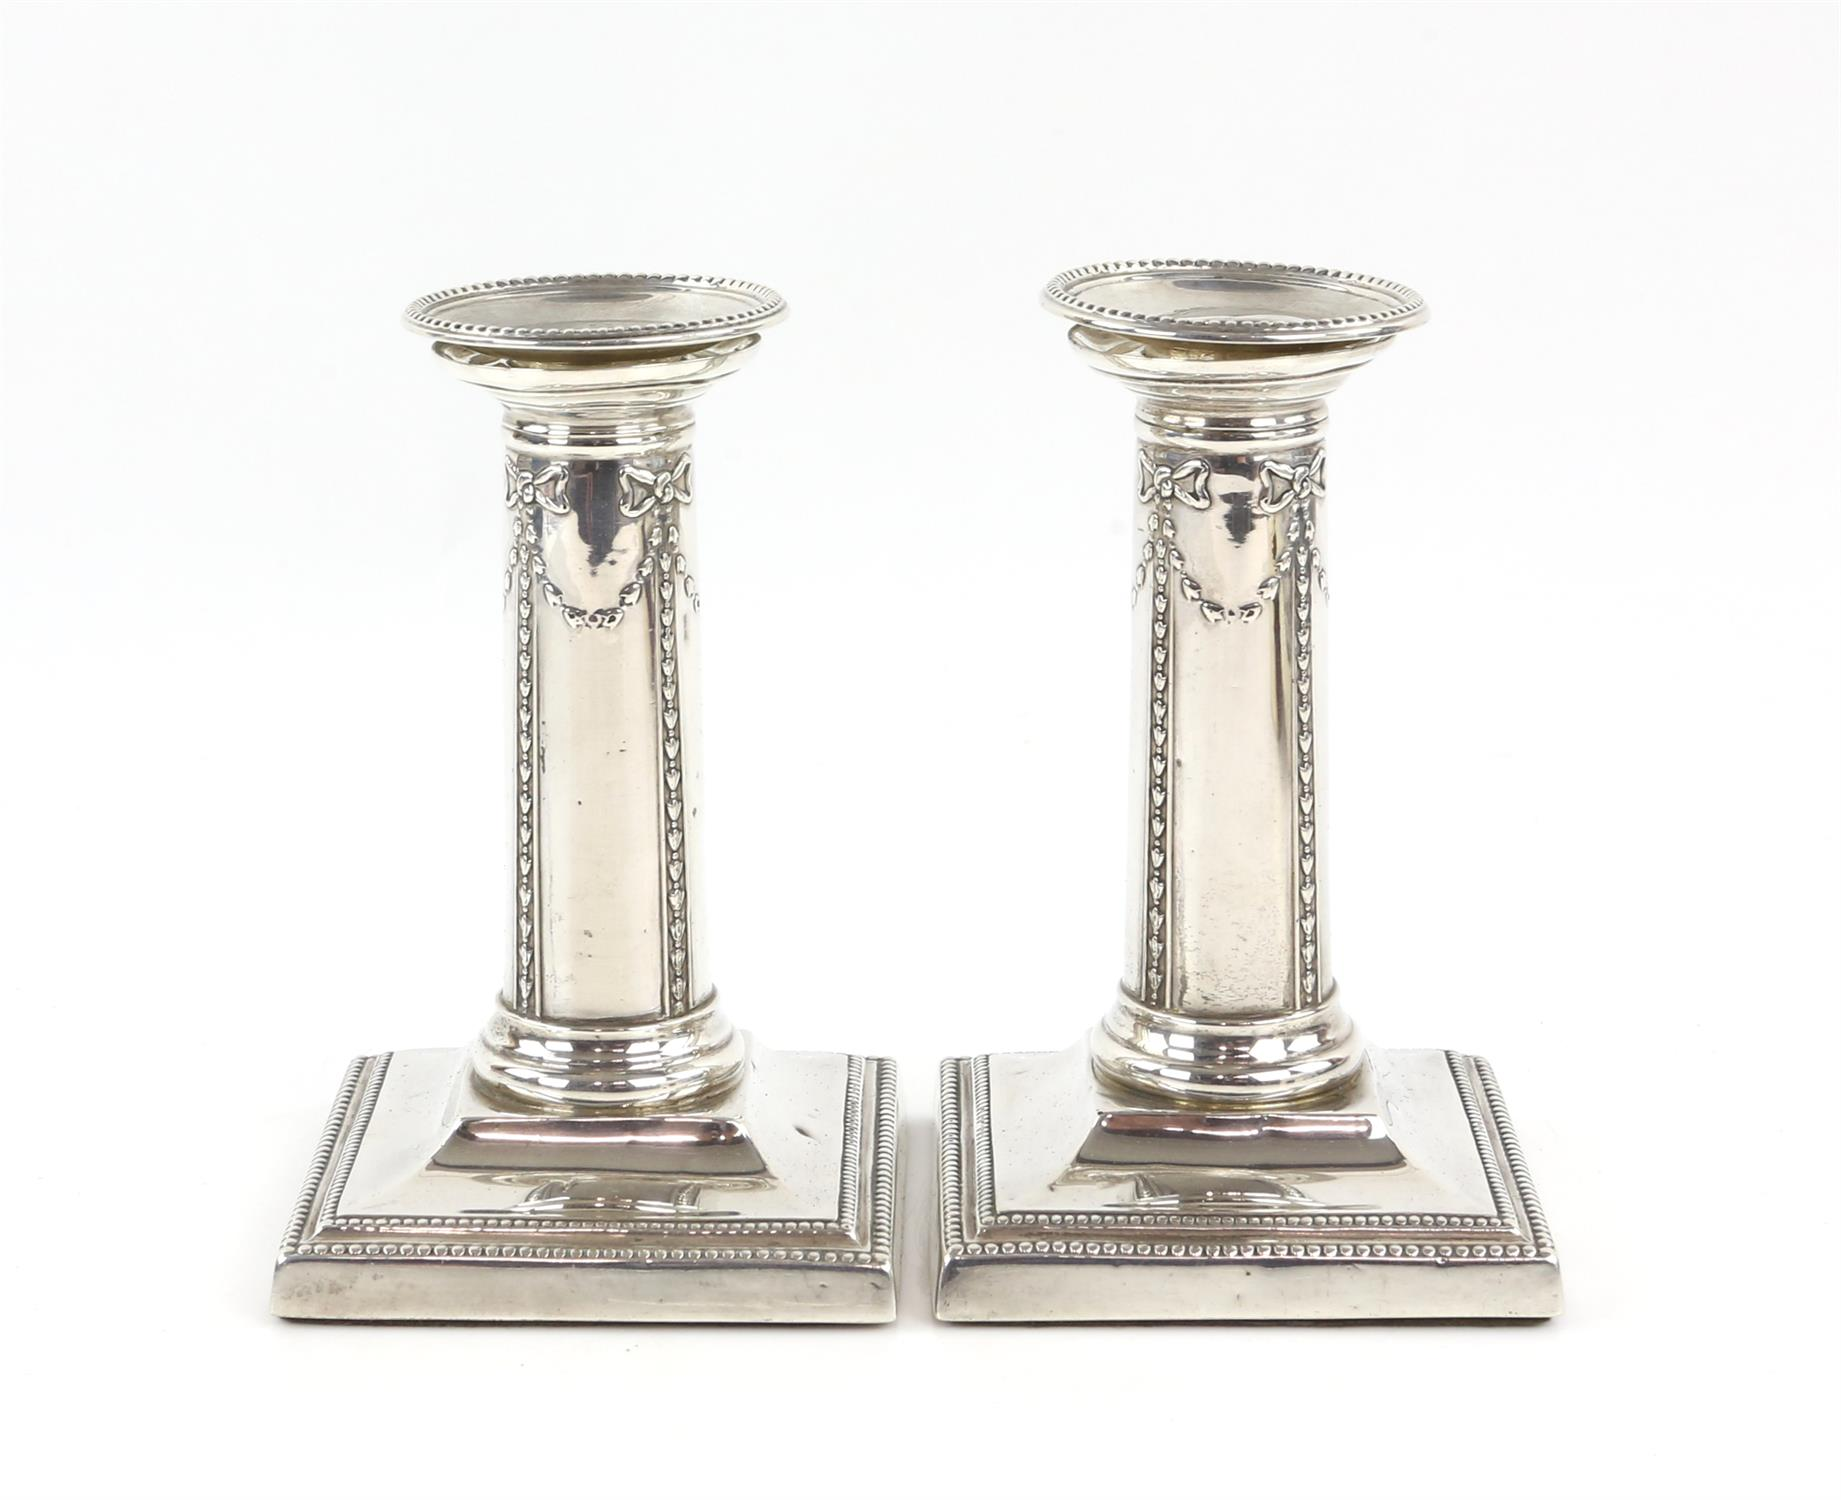 Pair of Victorian silver candlesticks with ribbon and swag decoration by Thomas Bradbury & Sons - Image 2 of 10